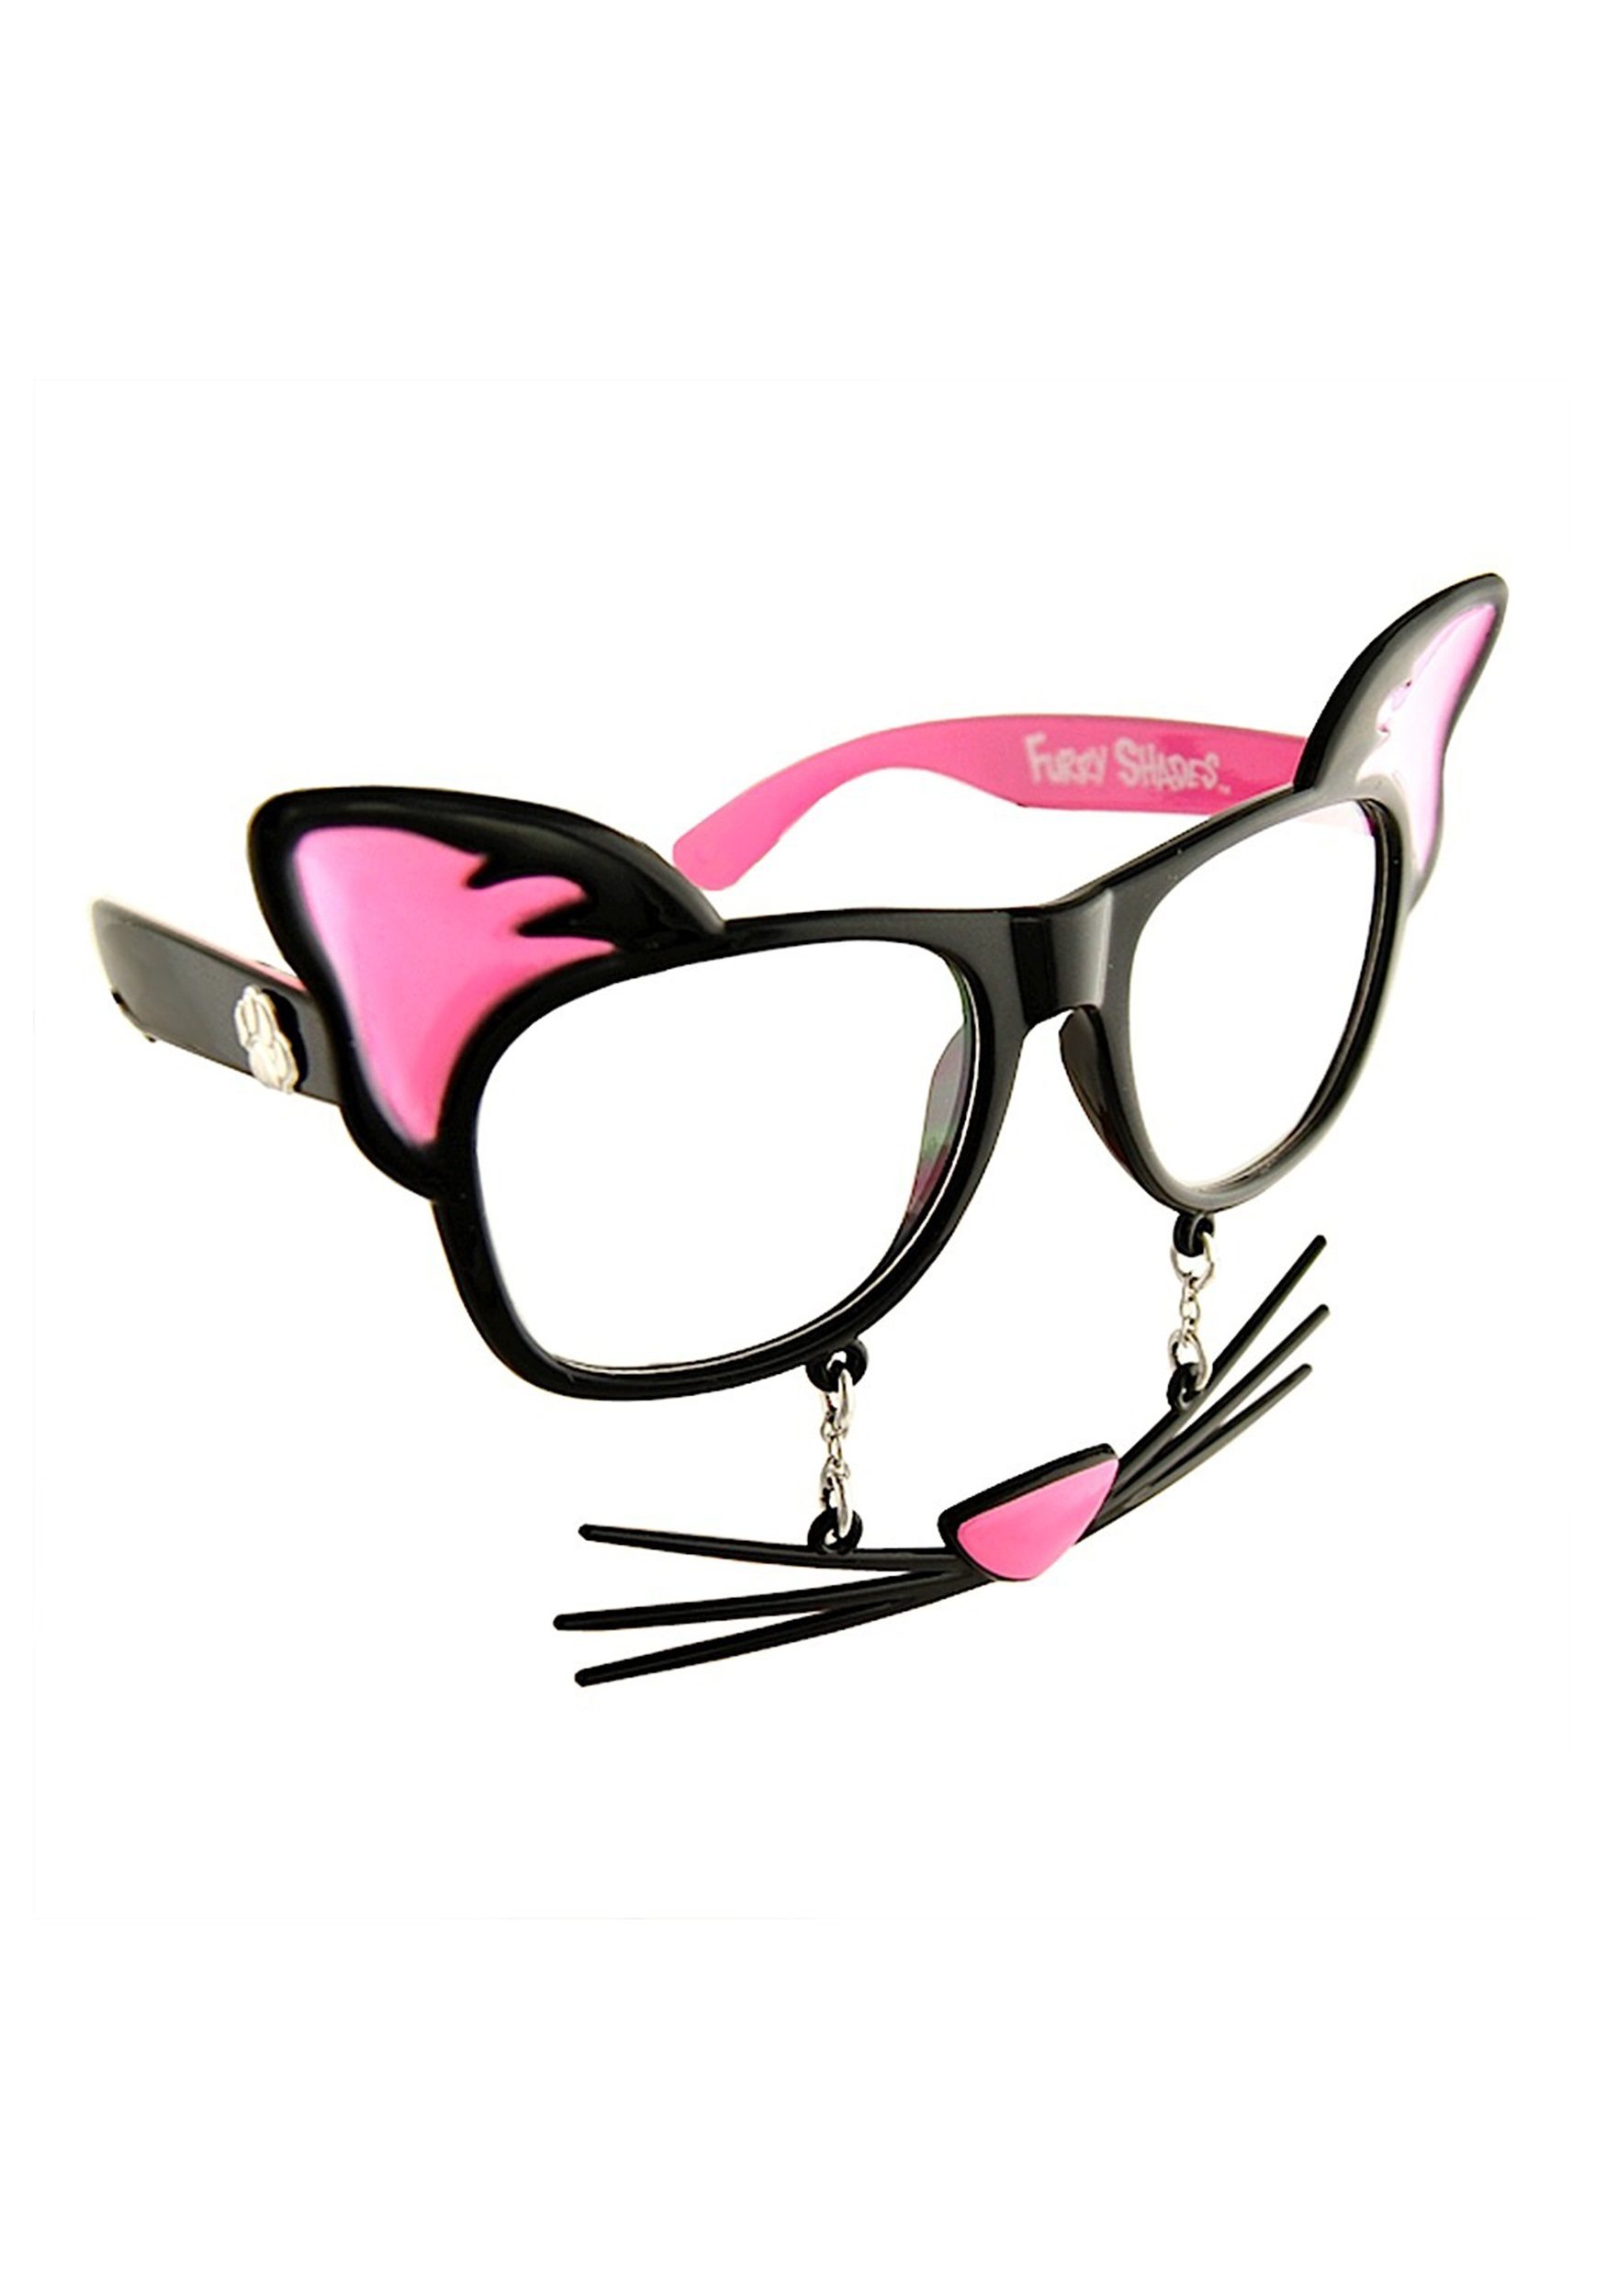 Cat 'Stache Adult Glasses